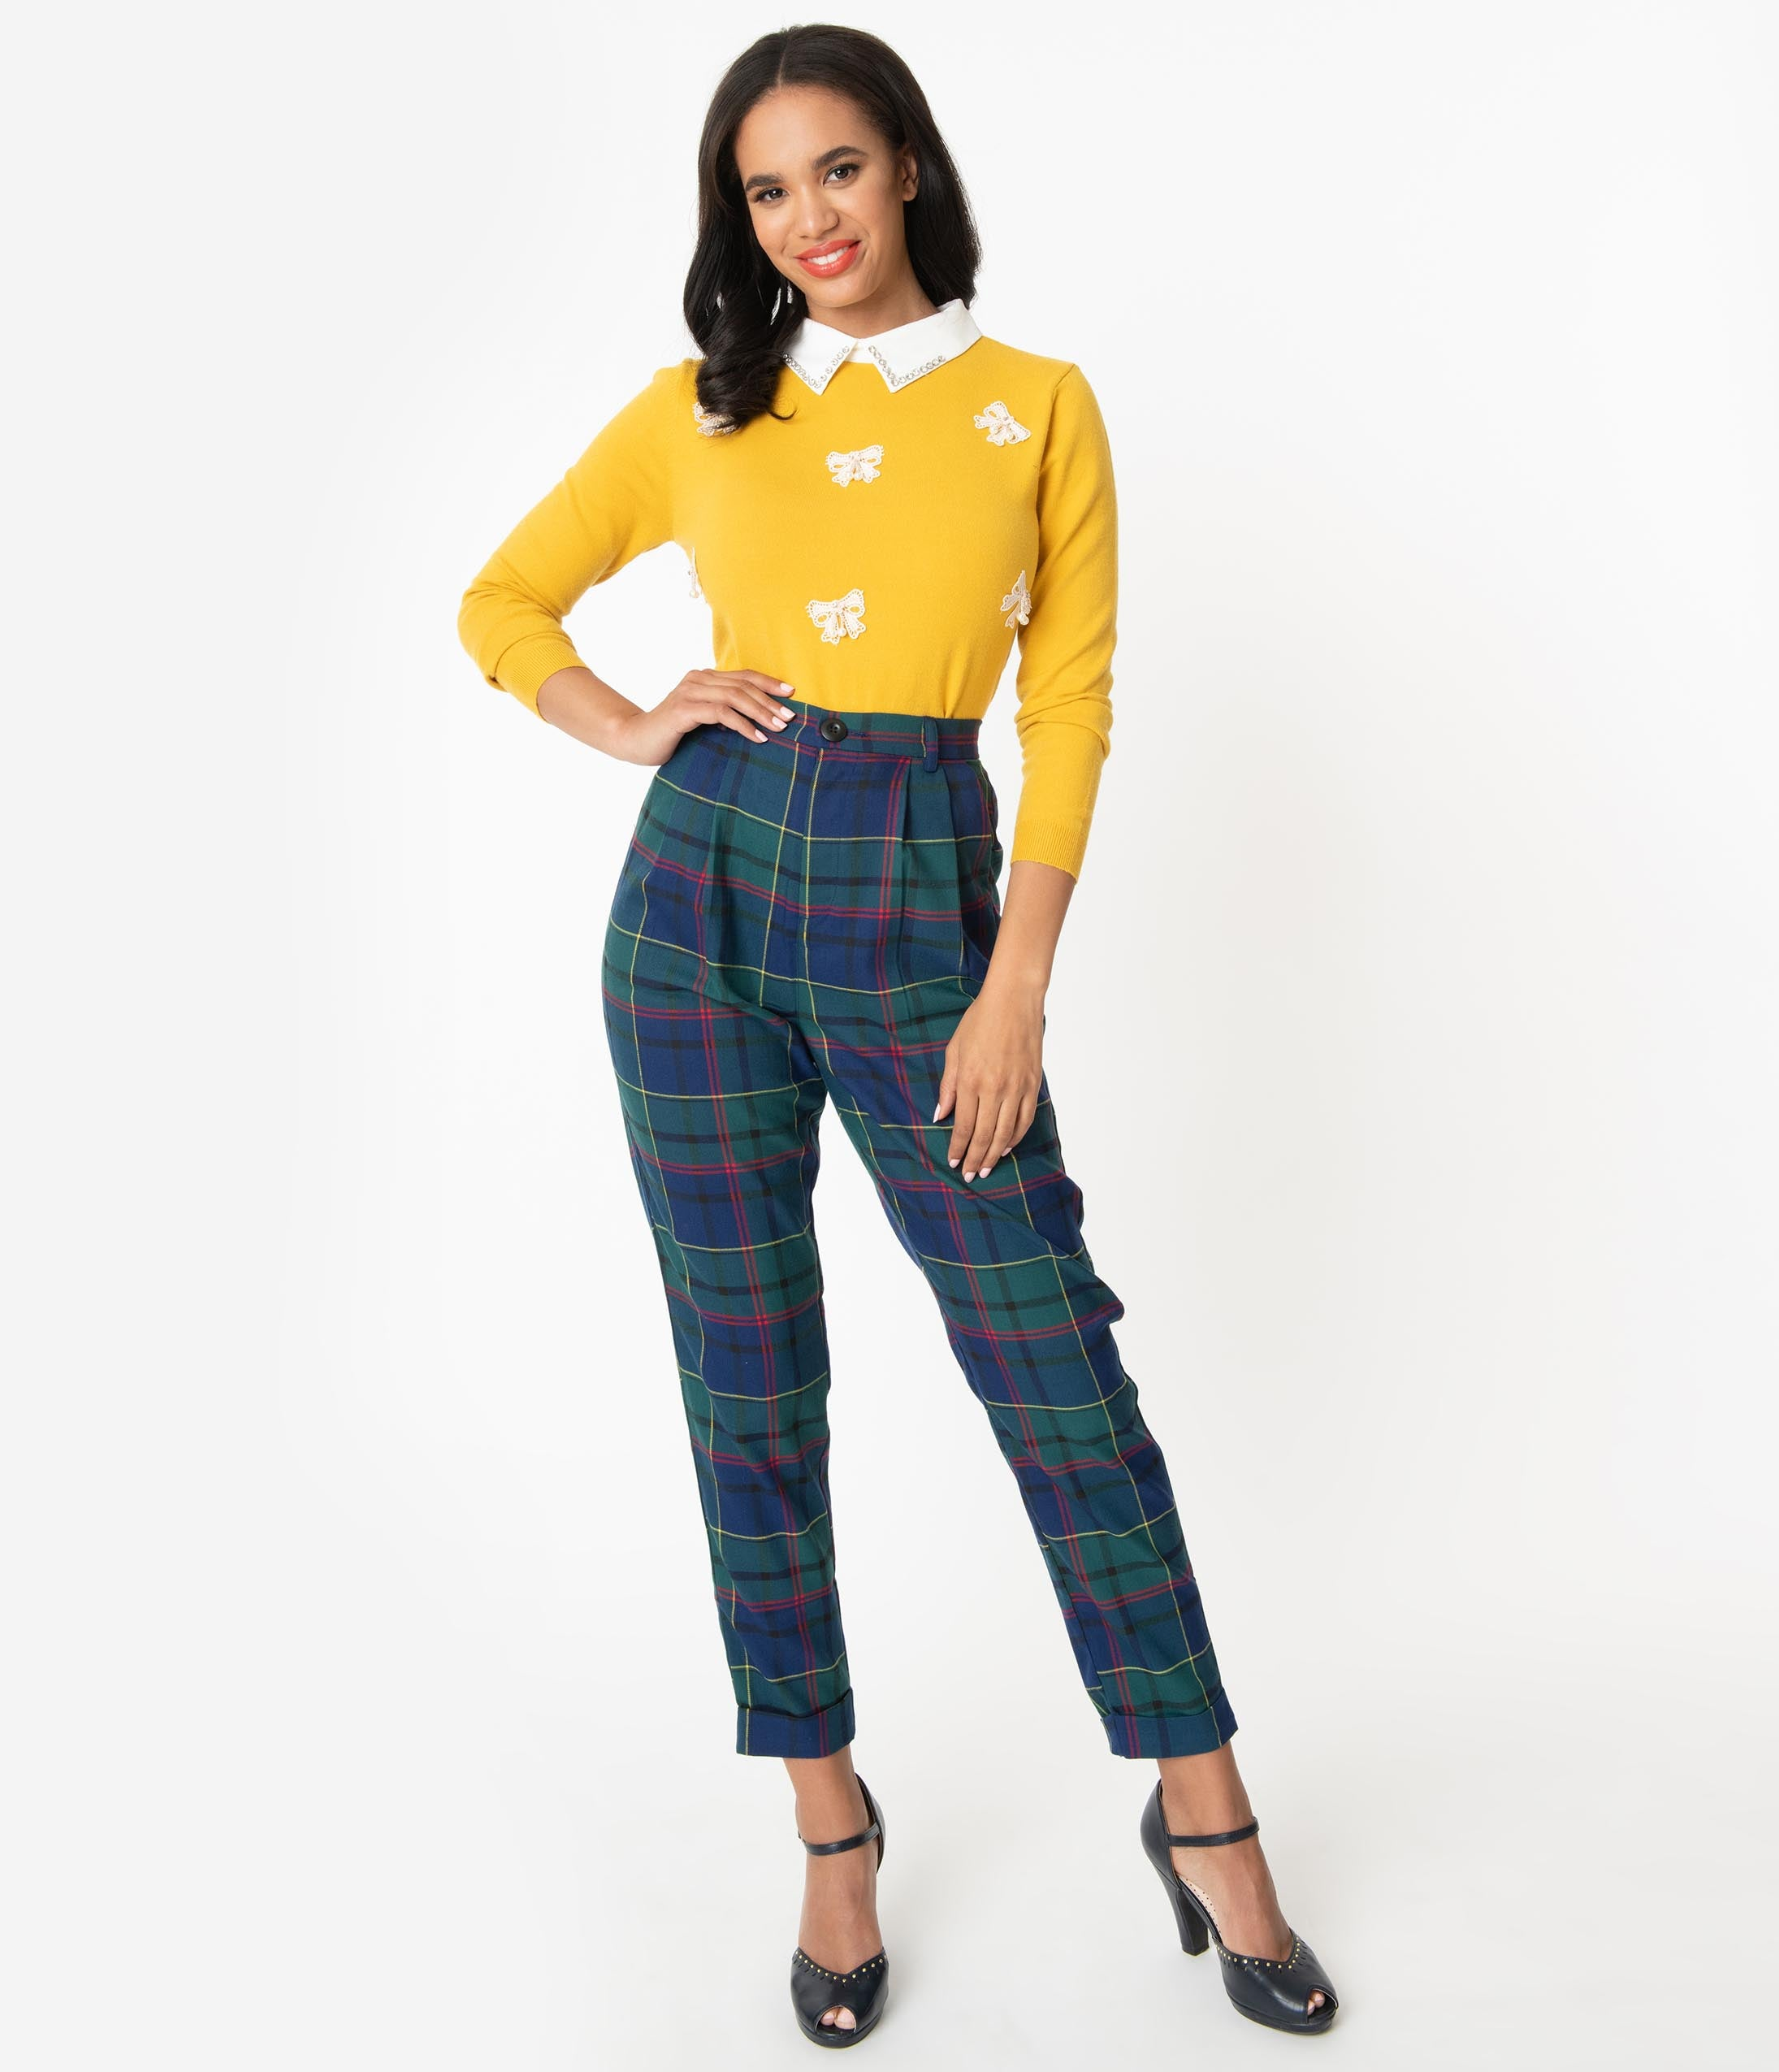 1950s Pants History for Women Bright  Beautiful Navy  Green Plaid Skye Scotty Cropped Pants $68.00 AT vintagedancer.com